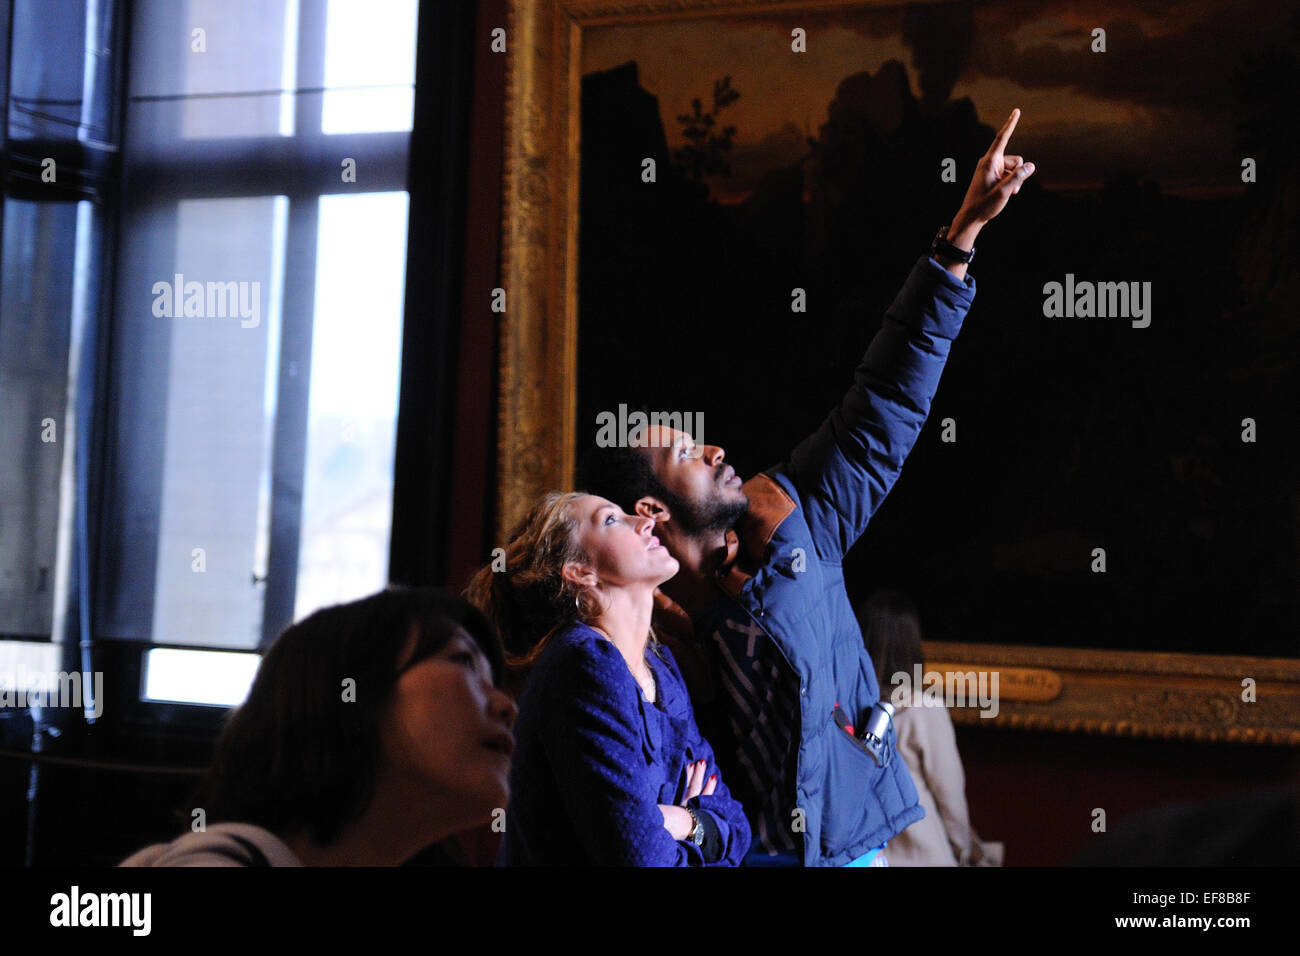 PARIS - MAR 1: Tourists look at the paintings at the Louvre Museum (Musee du Louvre) on March 1, 2014 in Par - Stock Image